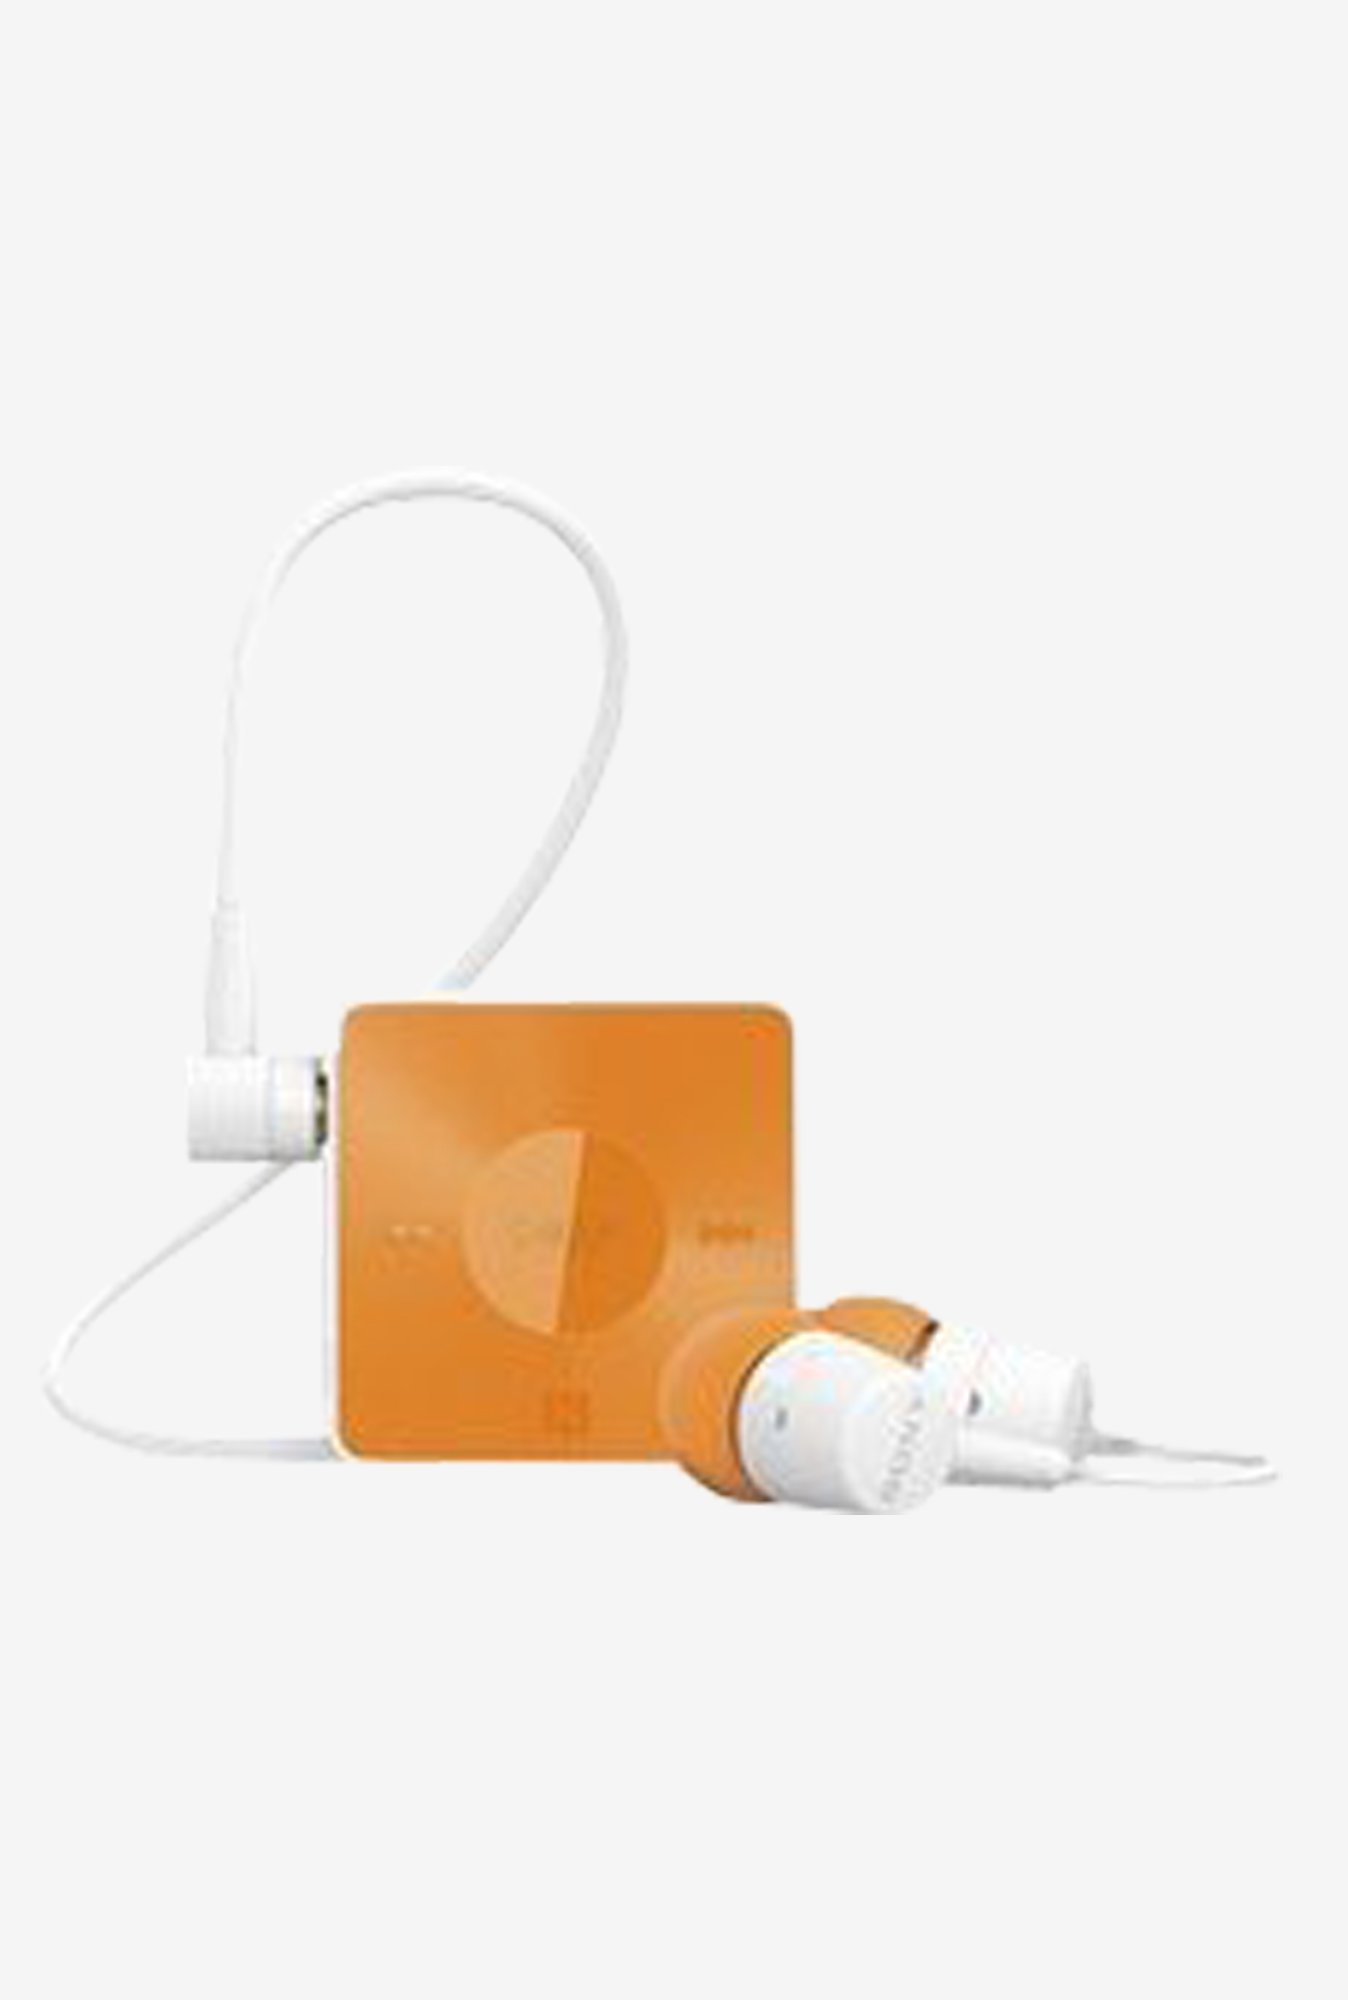 Sony 1278-4801 SBH20  wireless Bluetooth 3.0 / NFC - orange